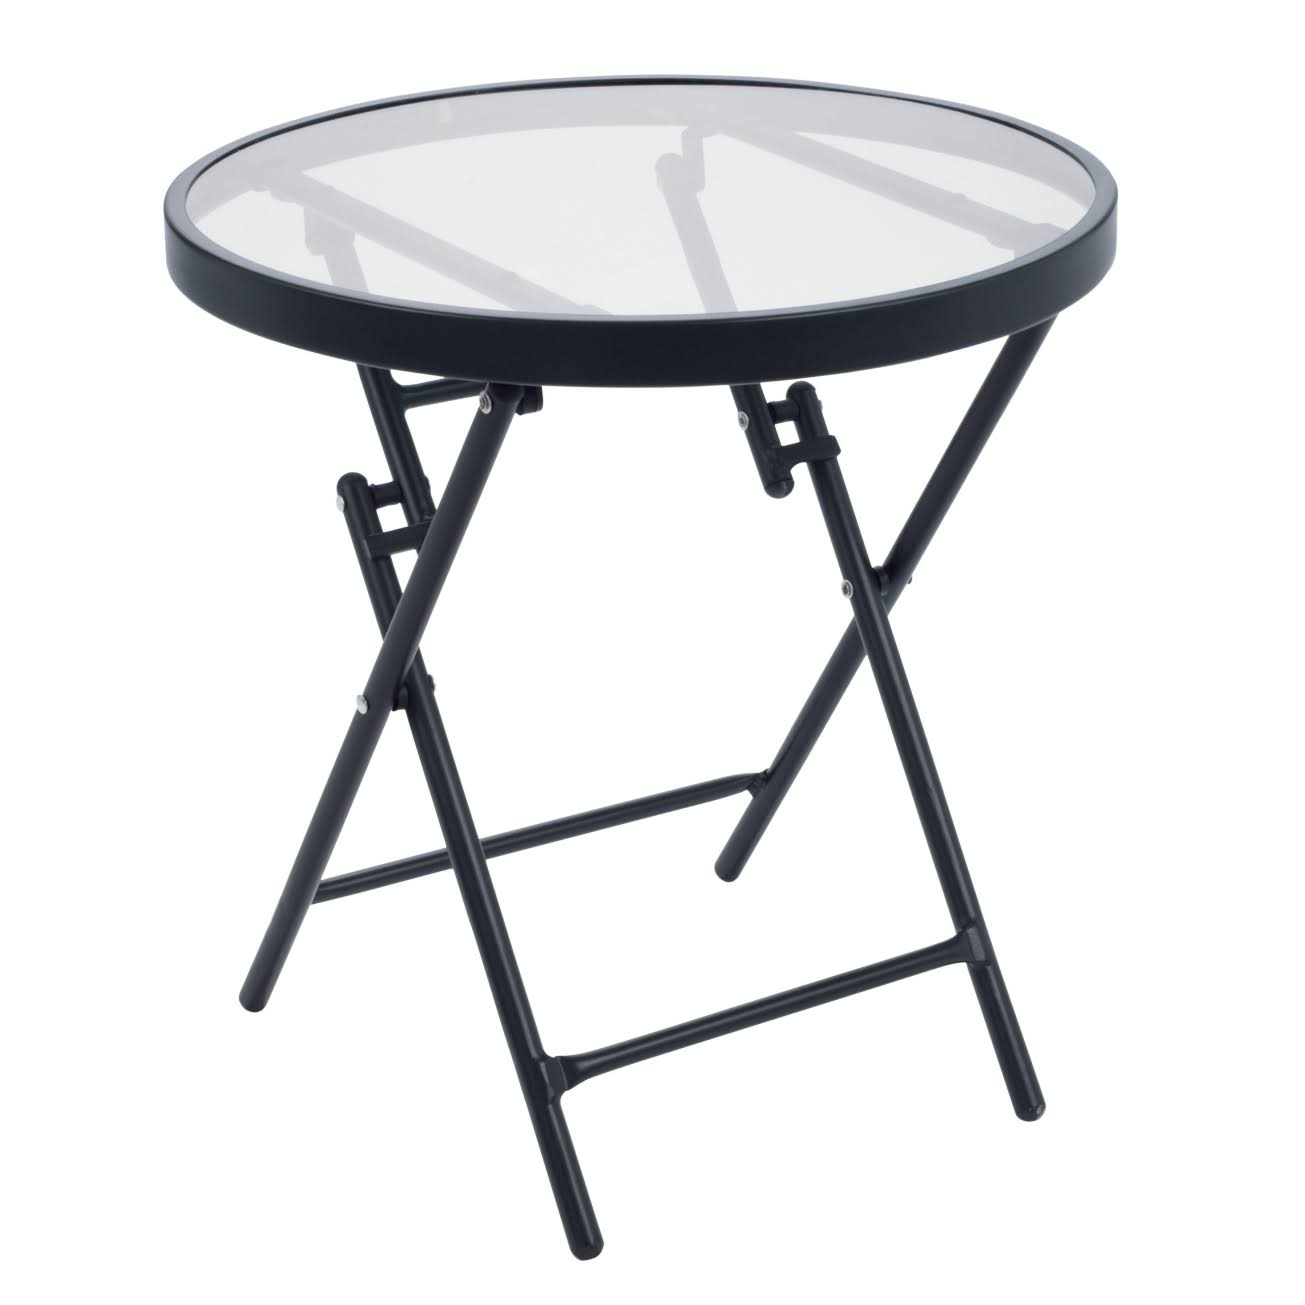 "Living Accents Steel Side Table - Black, 18.11""x17.72"""